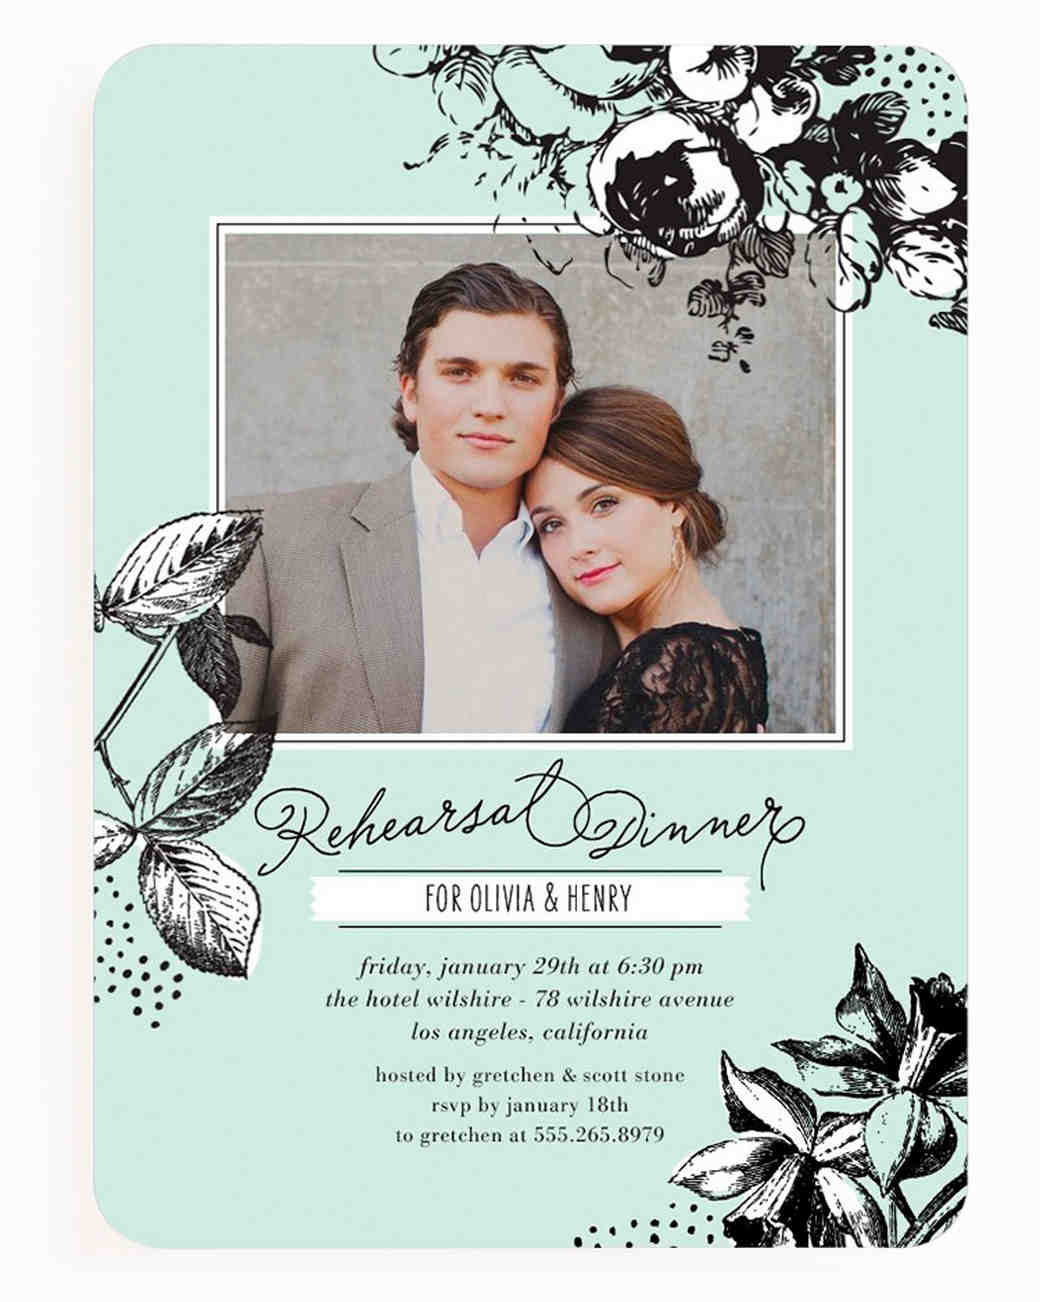 wedding-paper-divas-party-invitations-1135354-rehearsal-dinner-0914.jpg